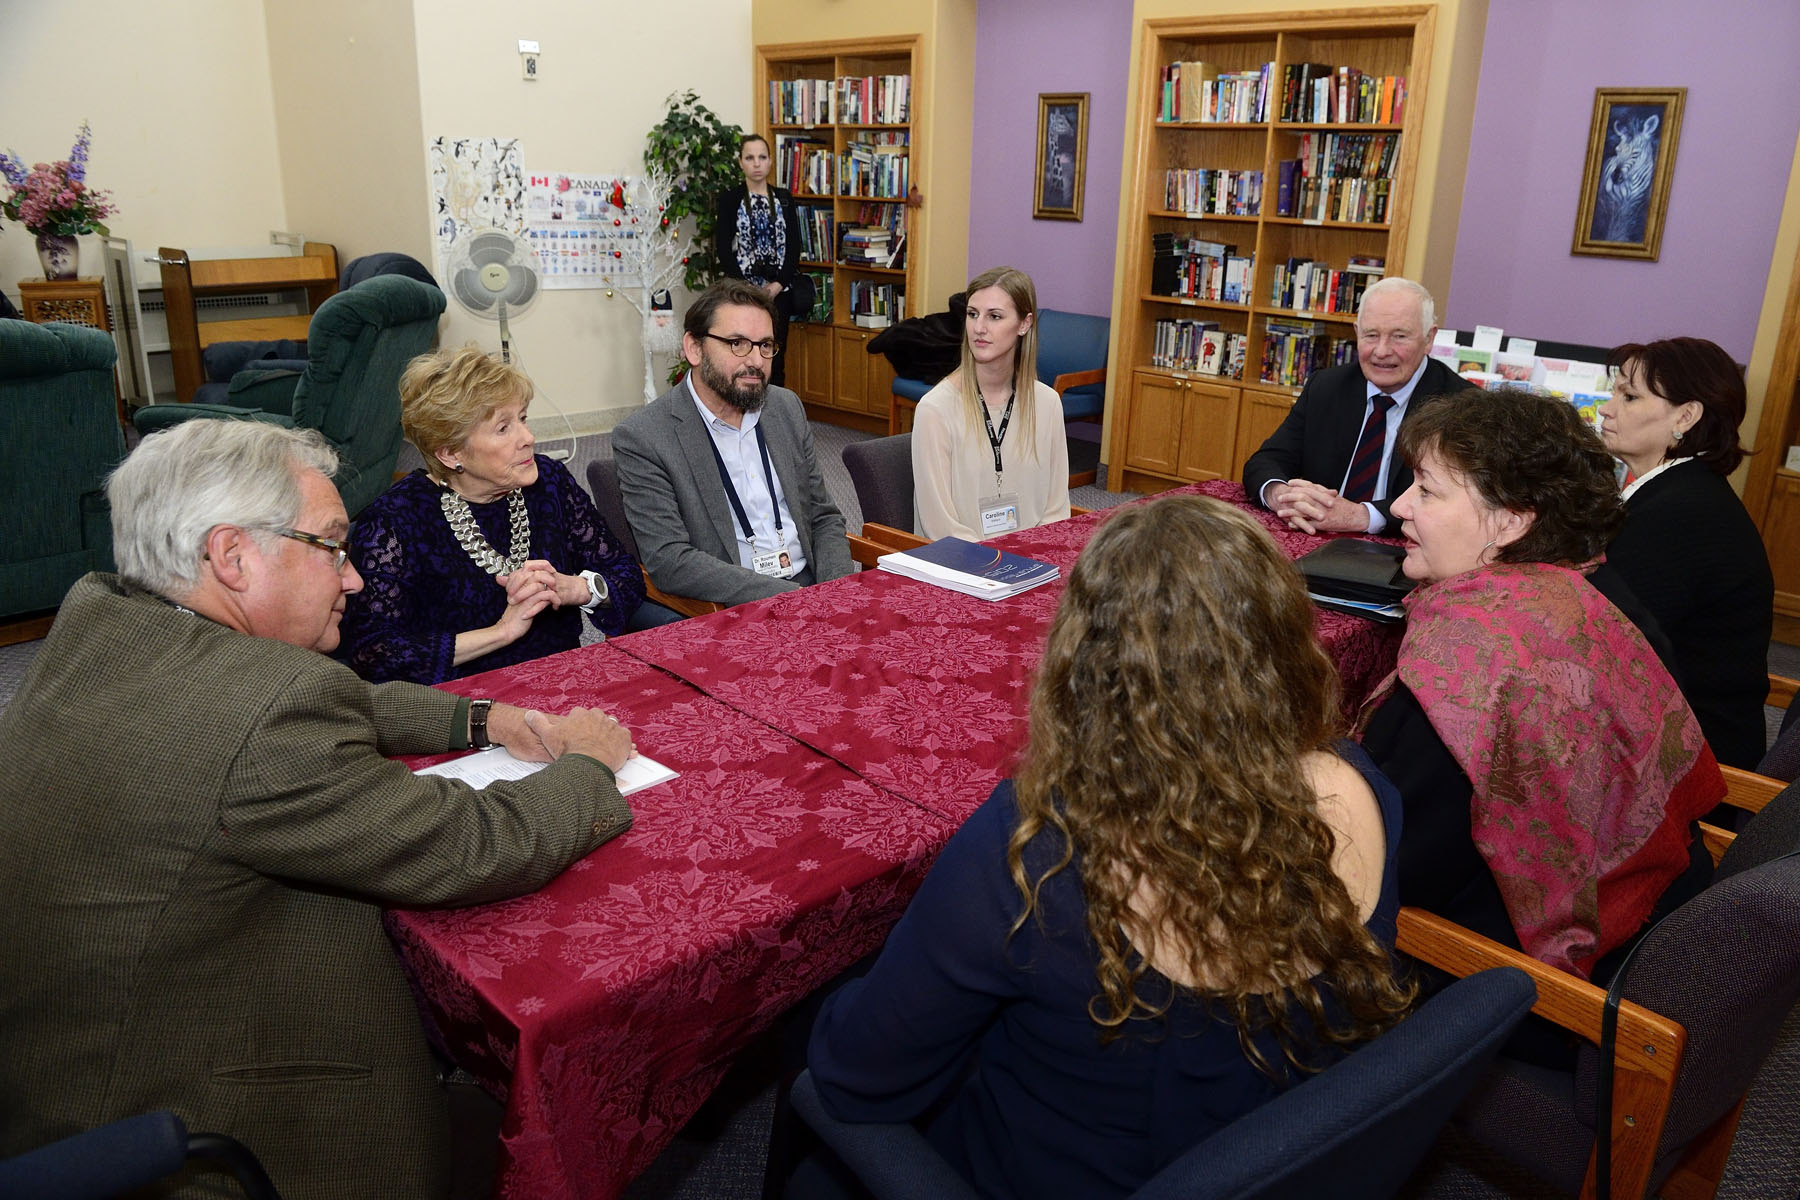 They met with anti-stigma leaders and mental health researchers to learn about advances in recovery for individuals with long-term mental illness.